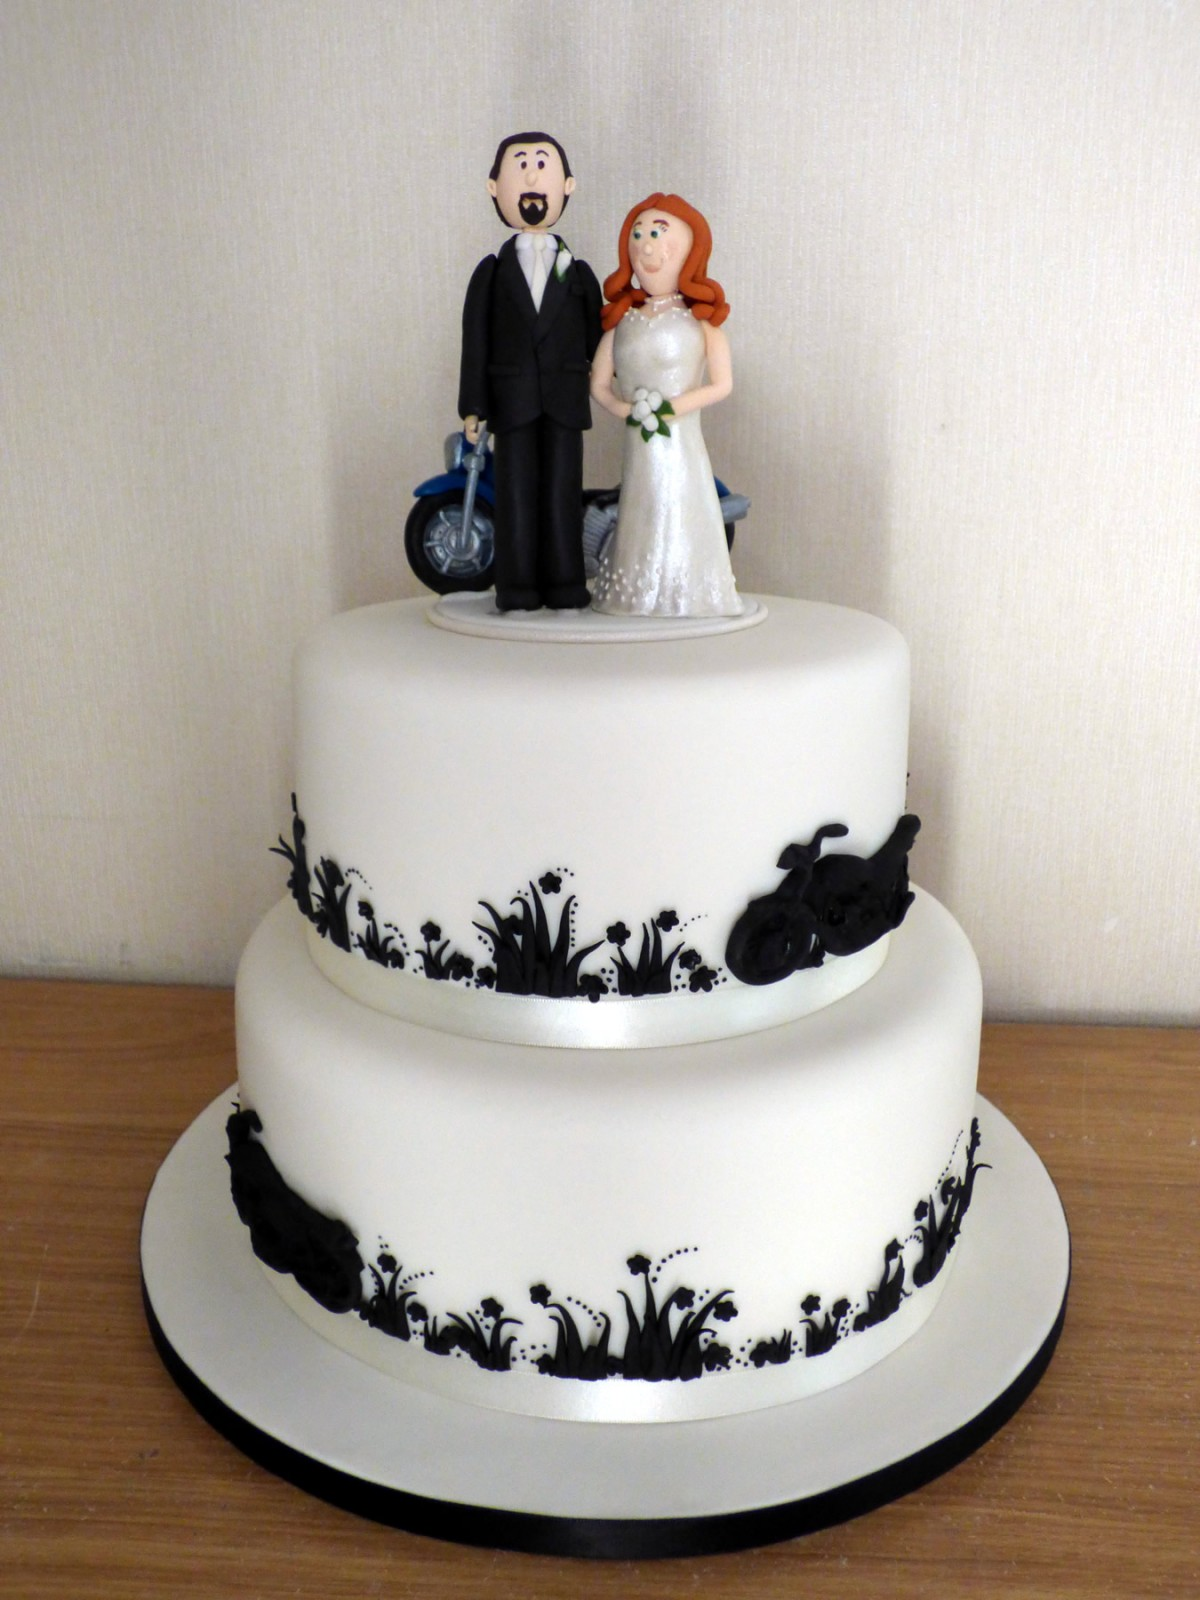 2 Tier Motorbike Themed Wedding Cake « Susie\'s Cakes